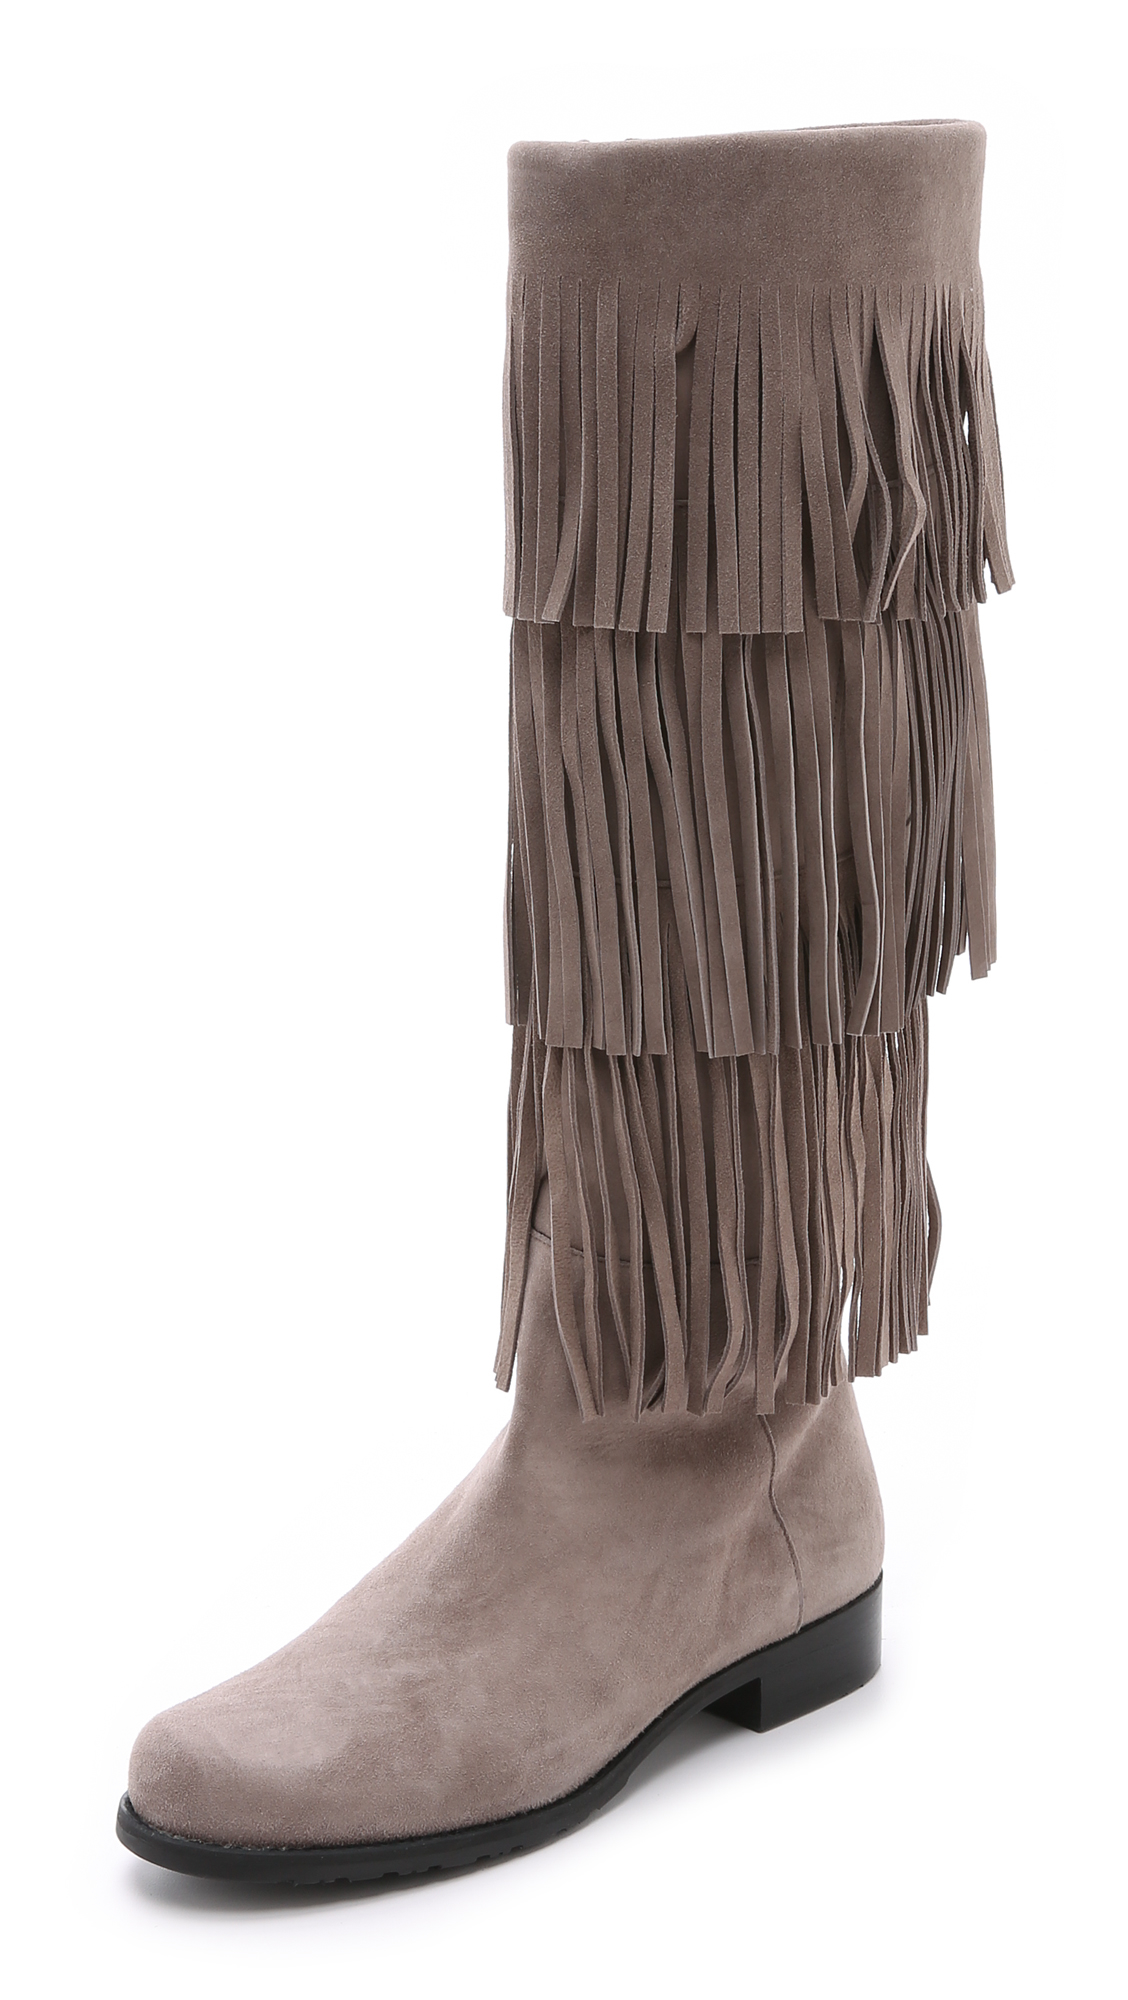 Stuart weitzman Swinglo Fringe Boots in Brown | Lyst